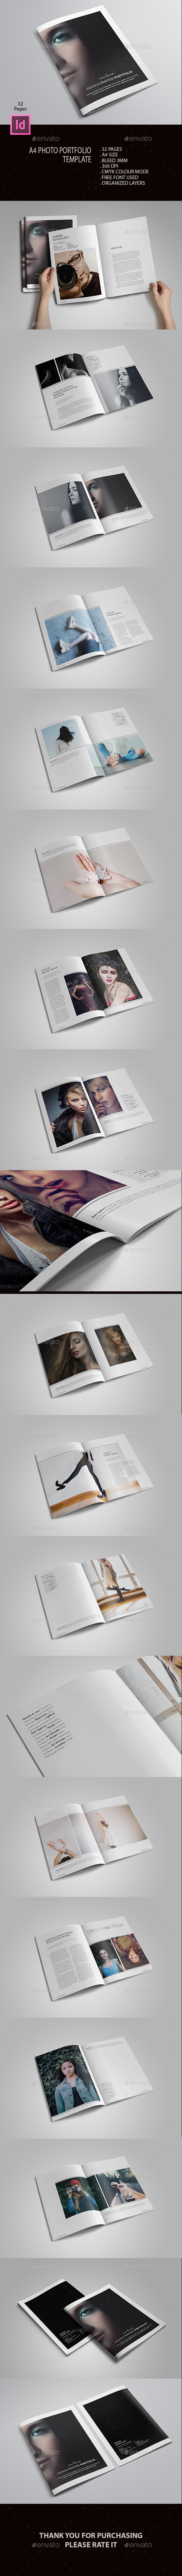 A4 Photo Portfolio Template - Photo Albums Print Templates